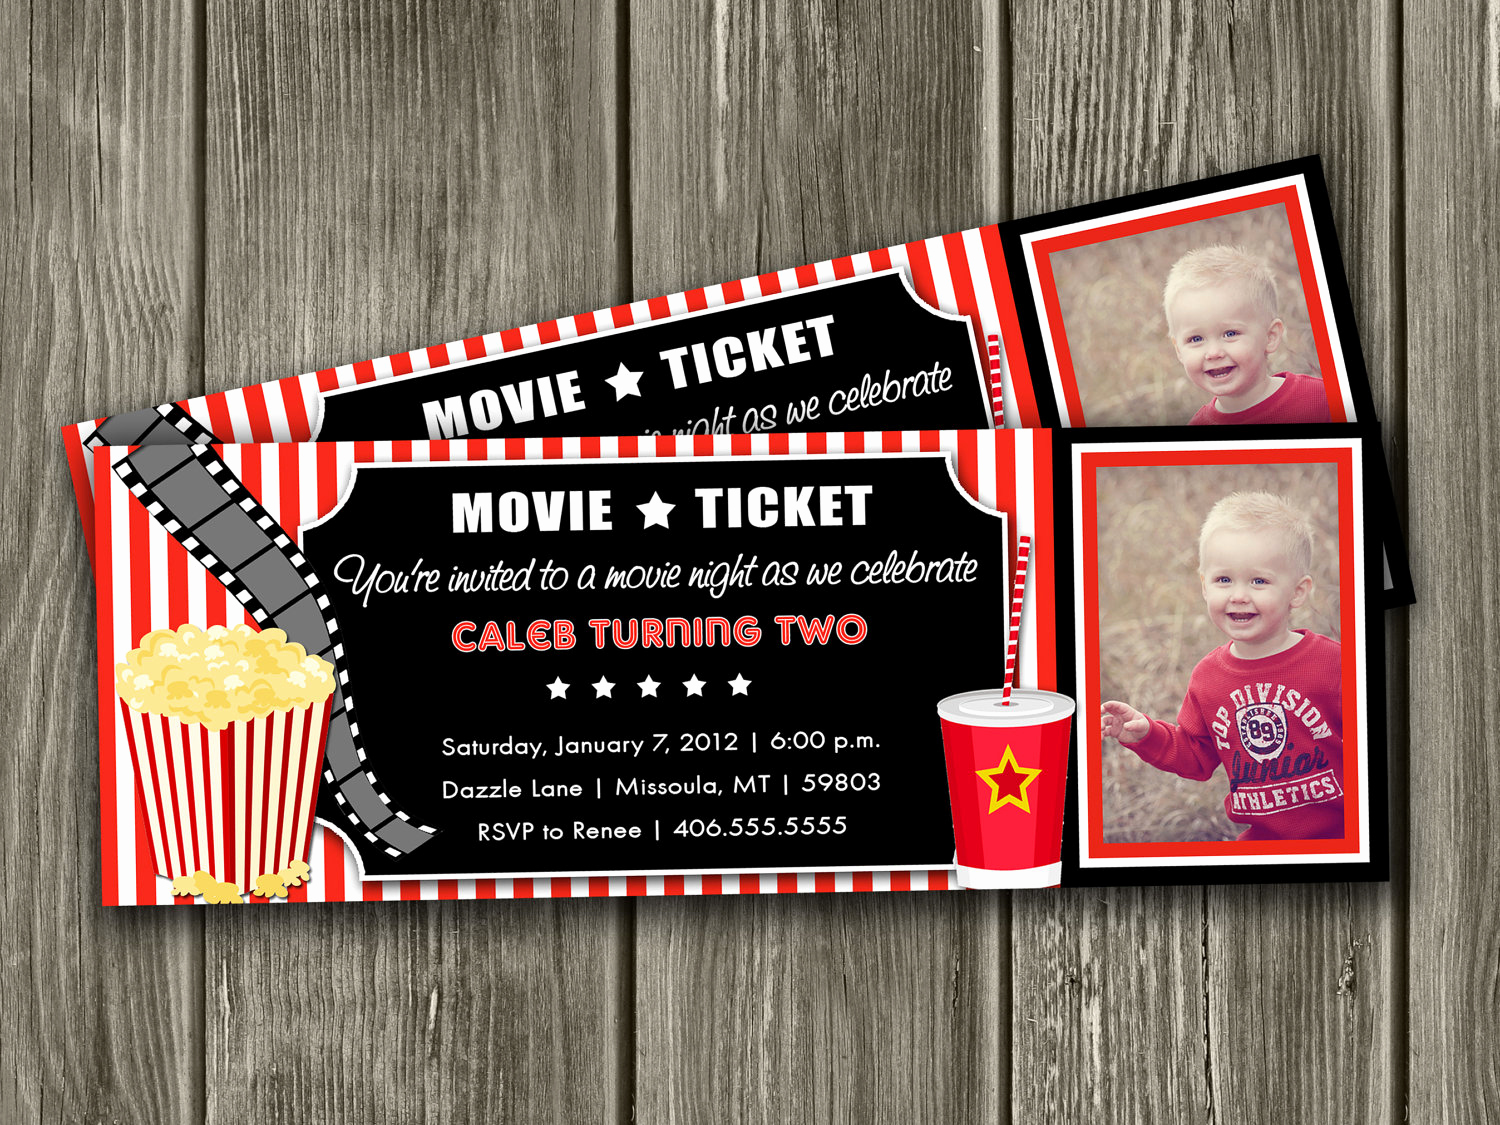 Movie Ticket Invitation Template Inspirational Movie Invitations Templates